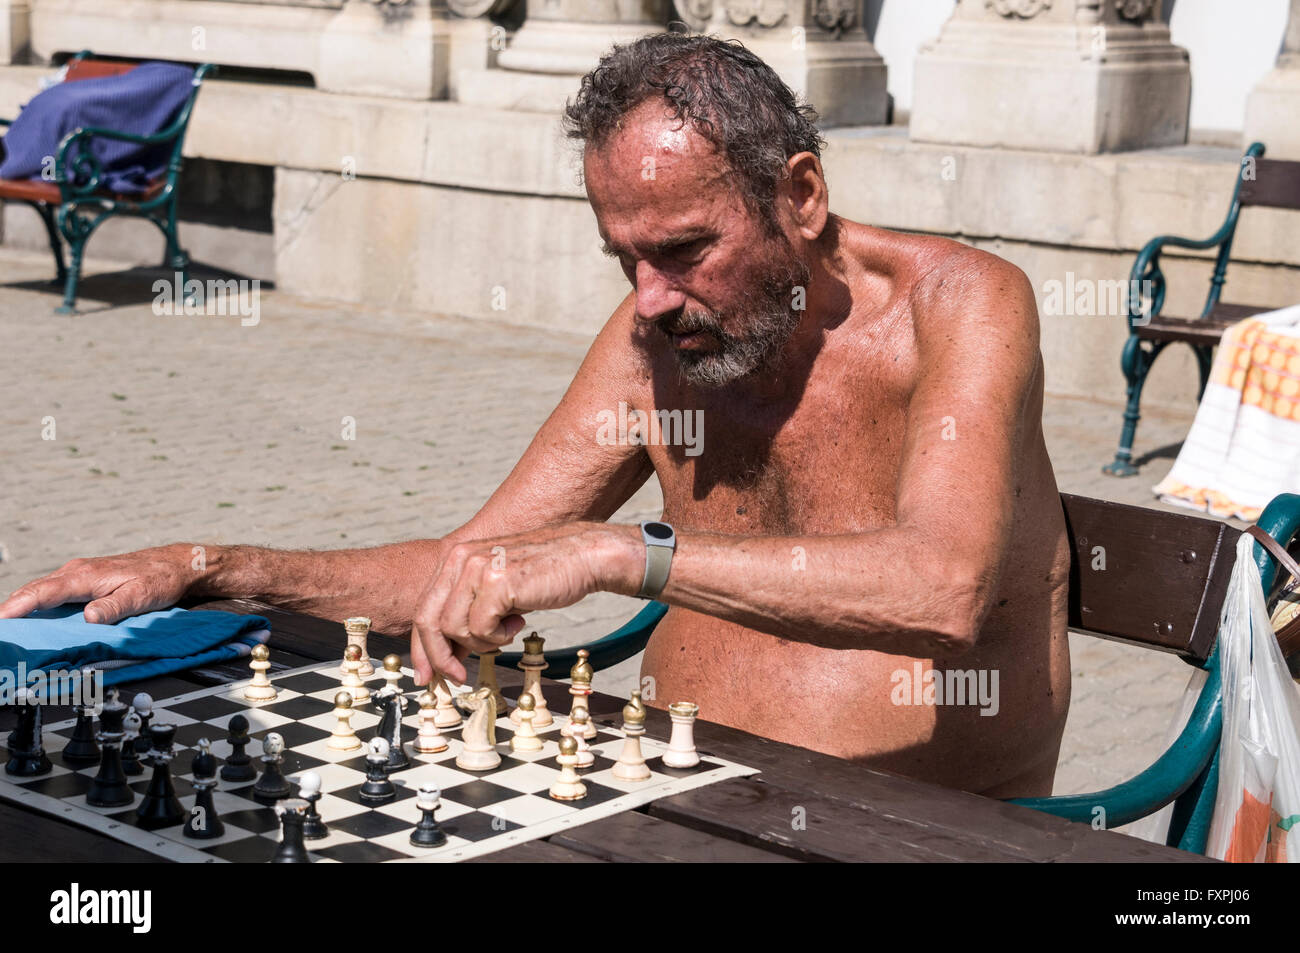 A game of chess  being played at the Szechenyi Spa and Swimming pool in City Park, Budapest,Hungary Stock Photo